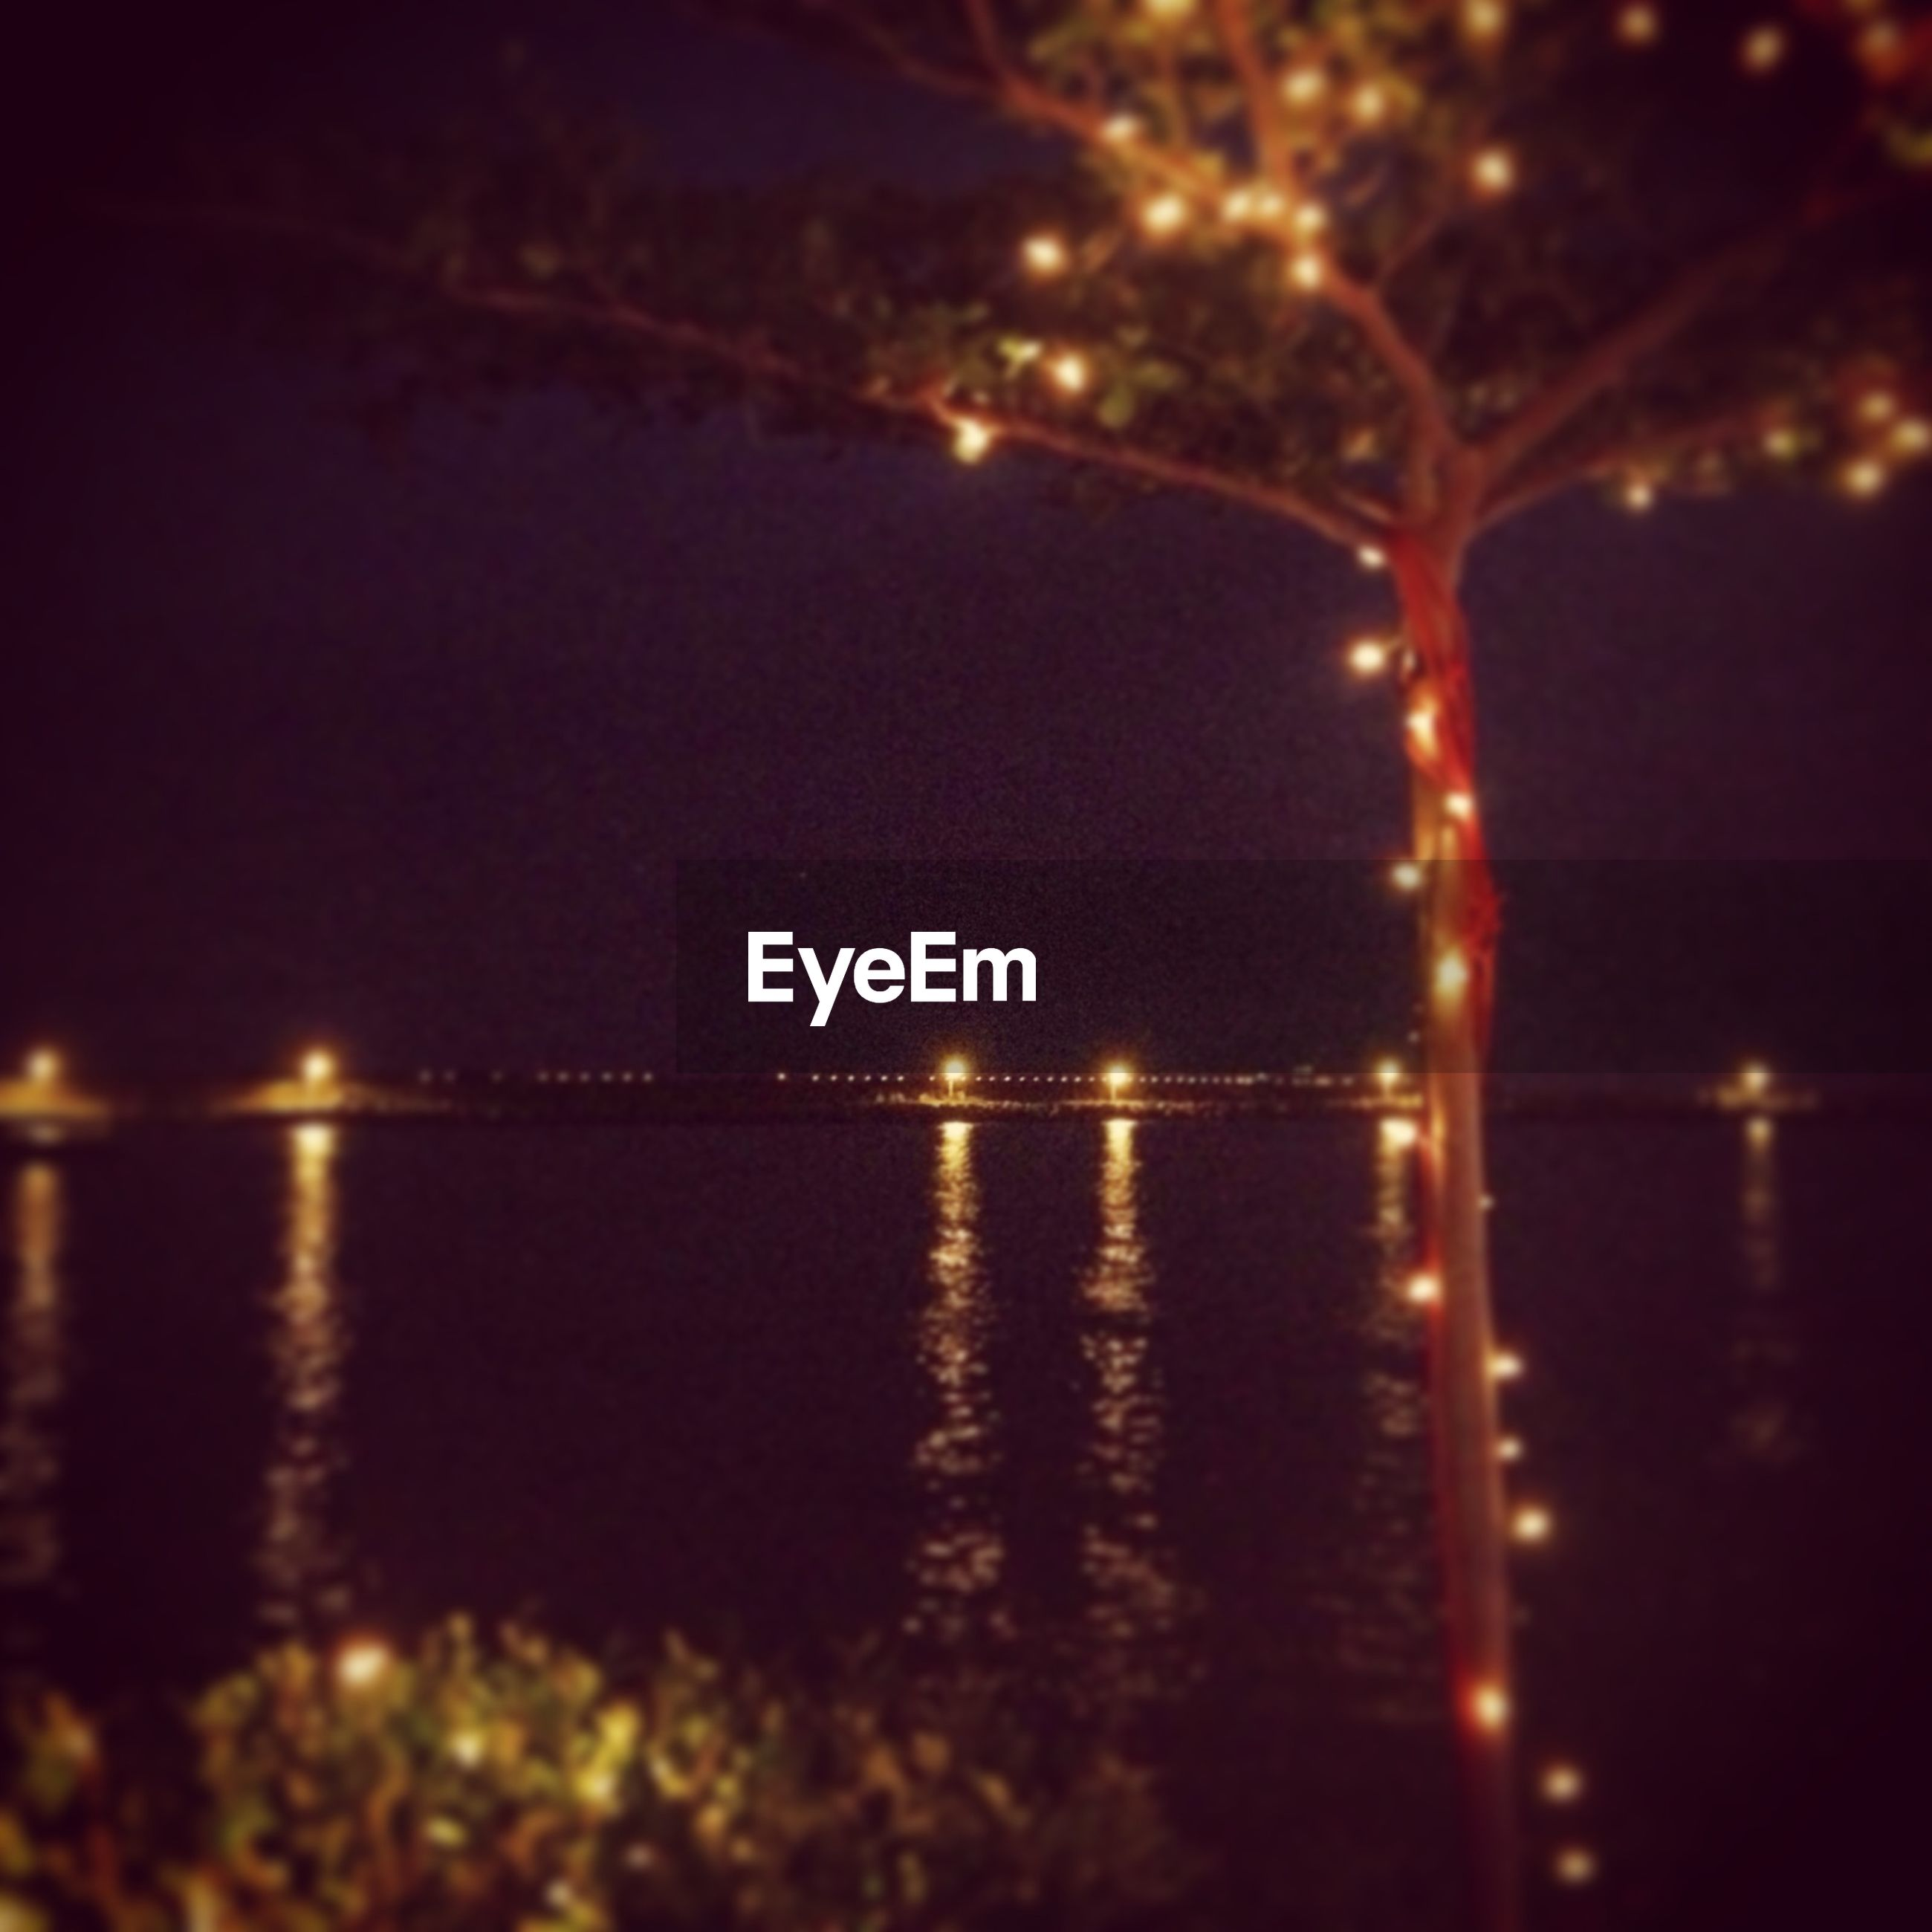 Illuminated lighting on tree by river against clear sky at night